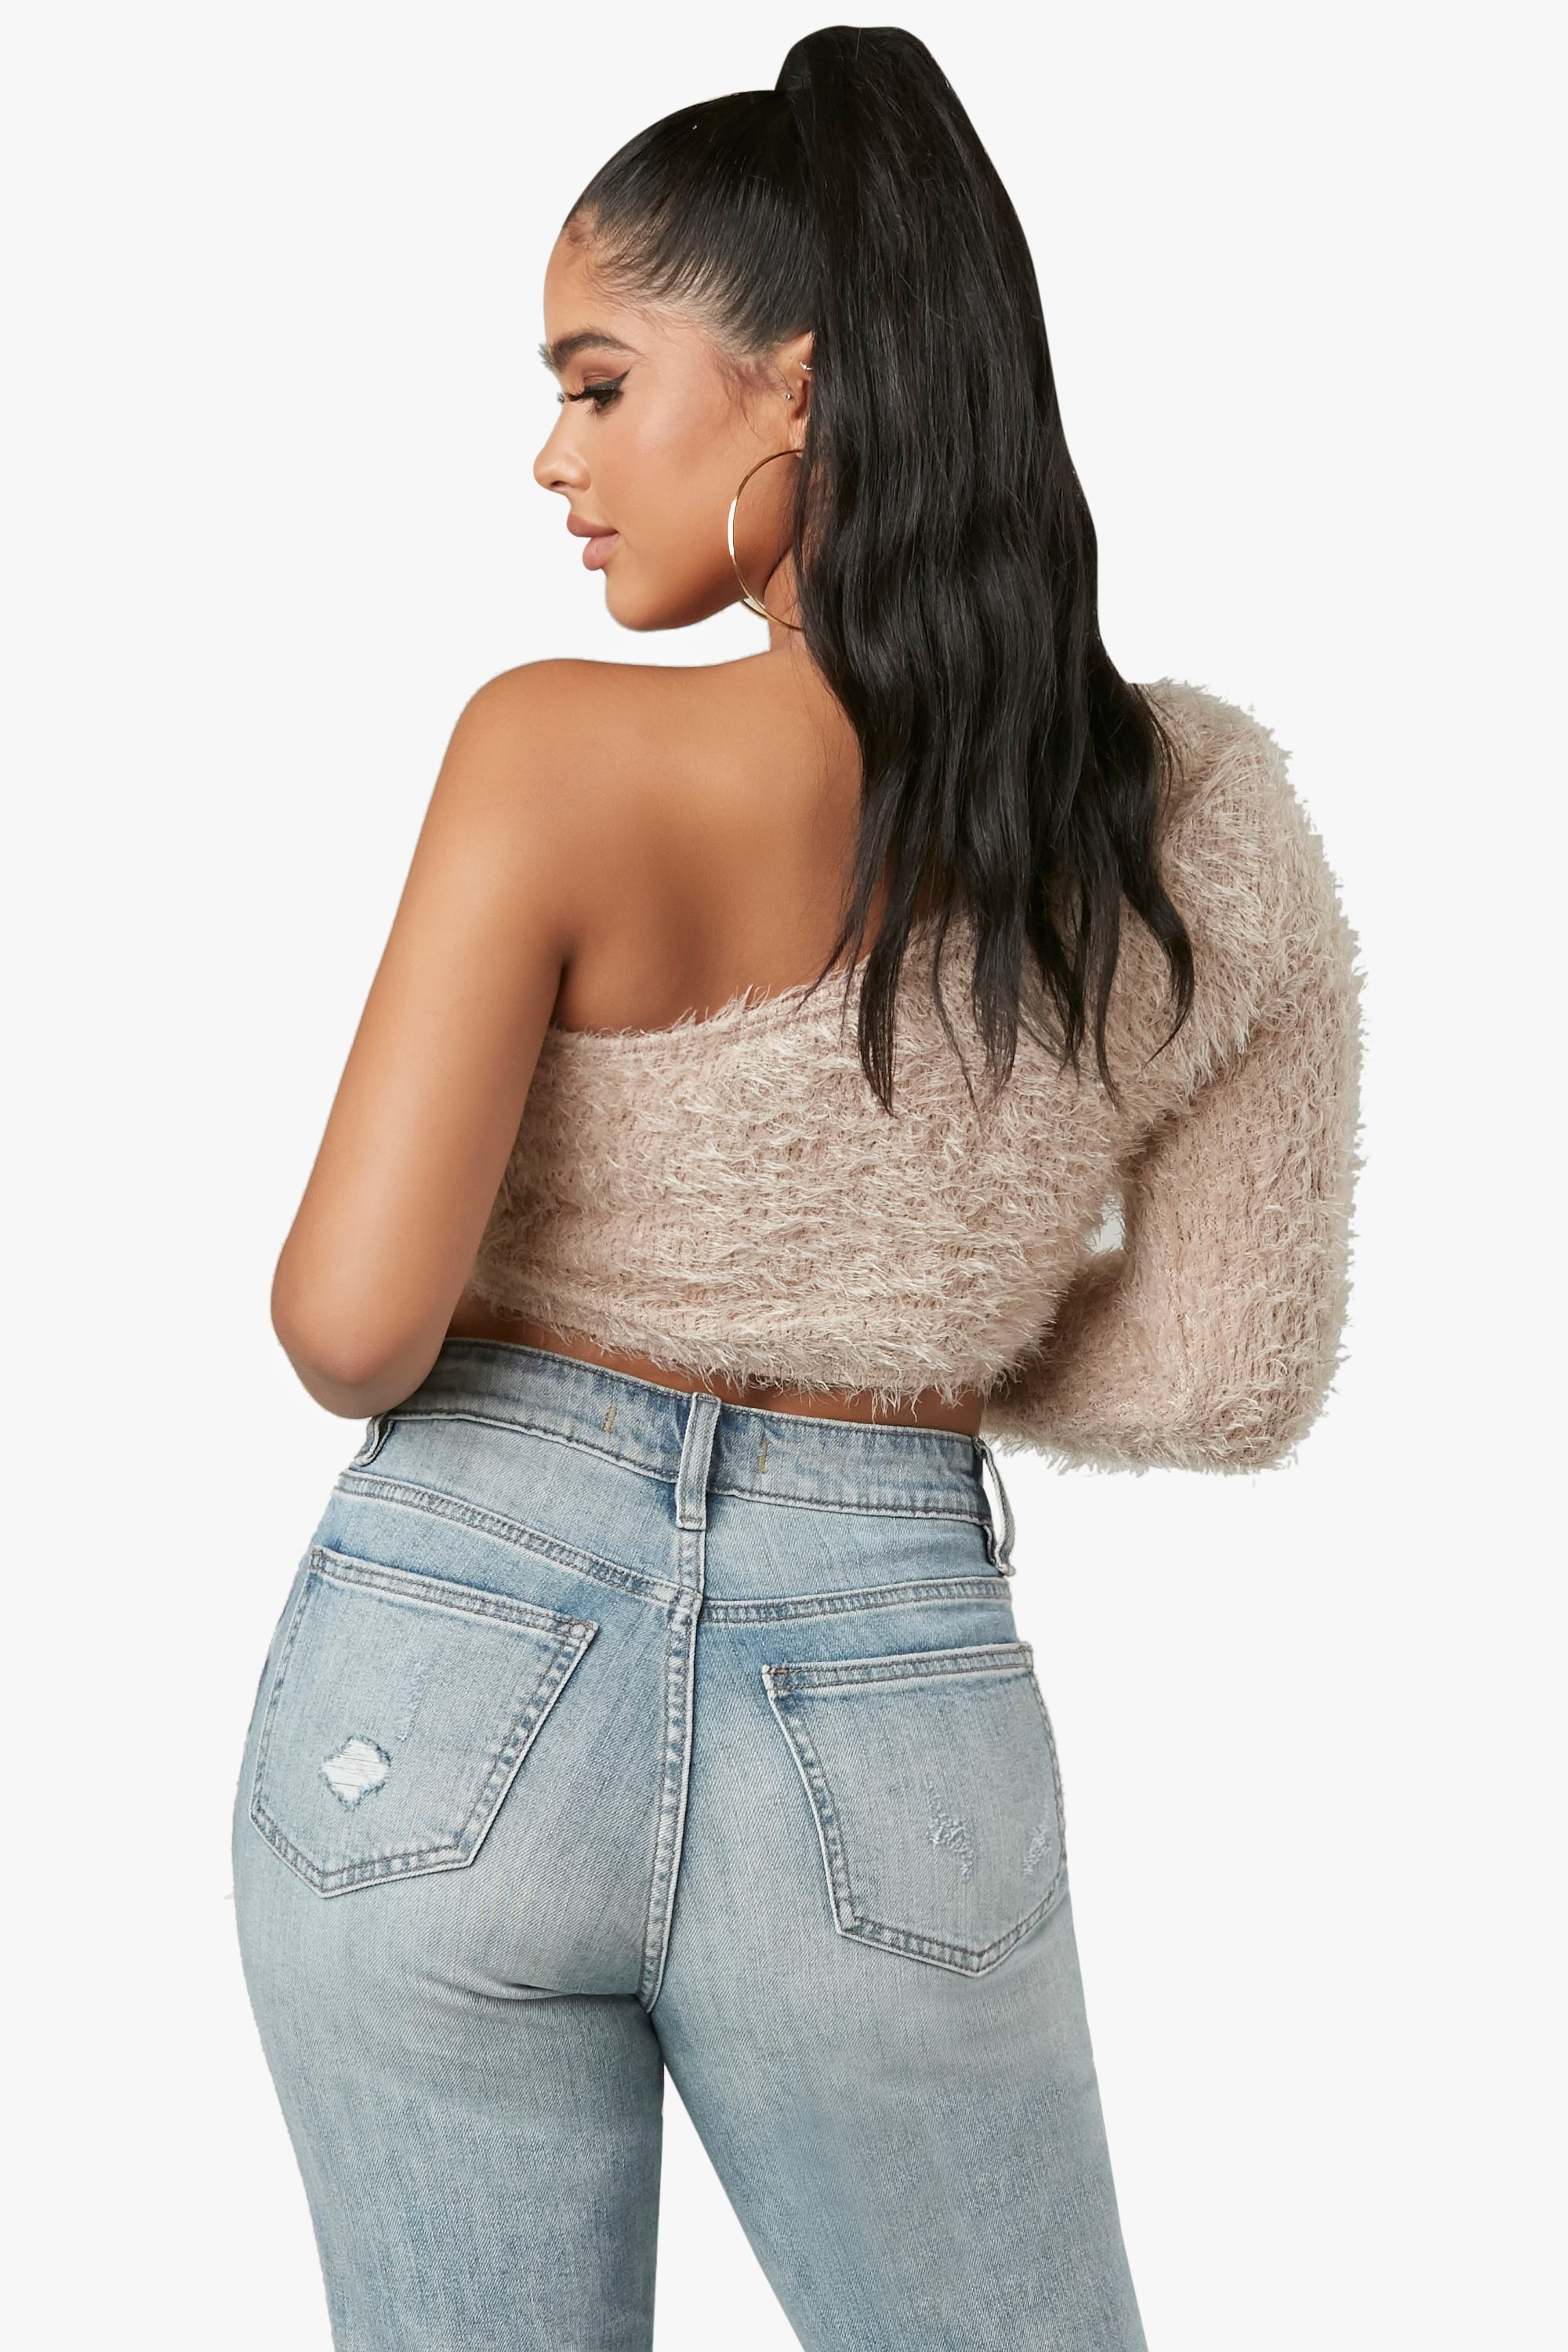 A Side Of Sass Top